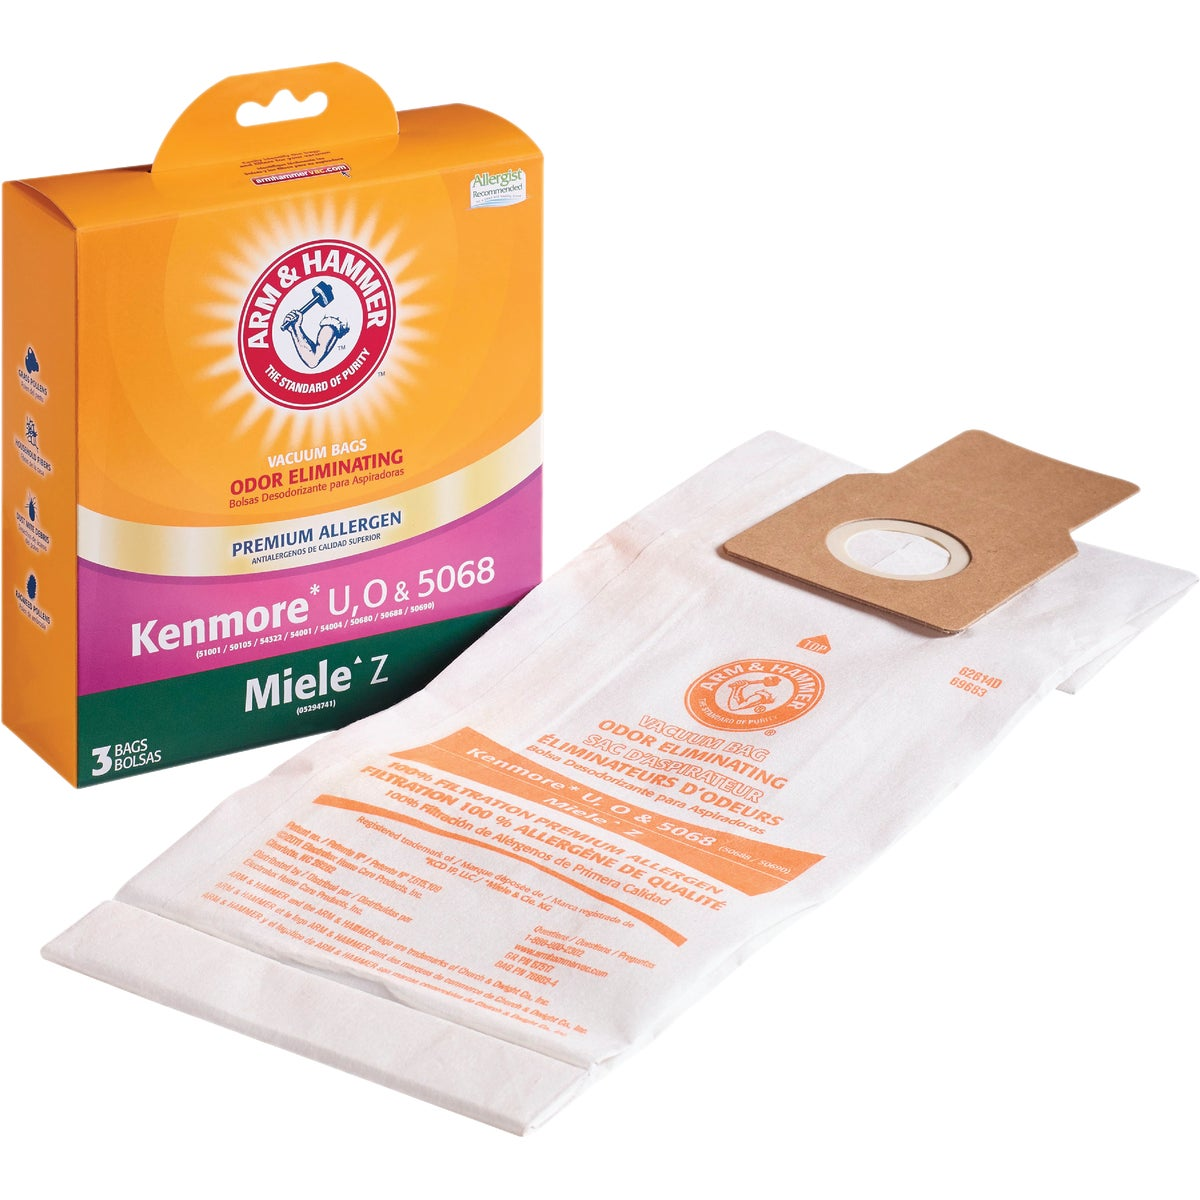 3M KENMORE VACUUM BAG - 68707A-2 by Electrolux Home Care